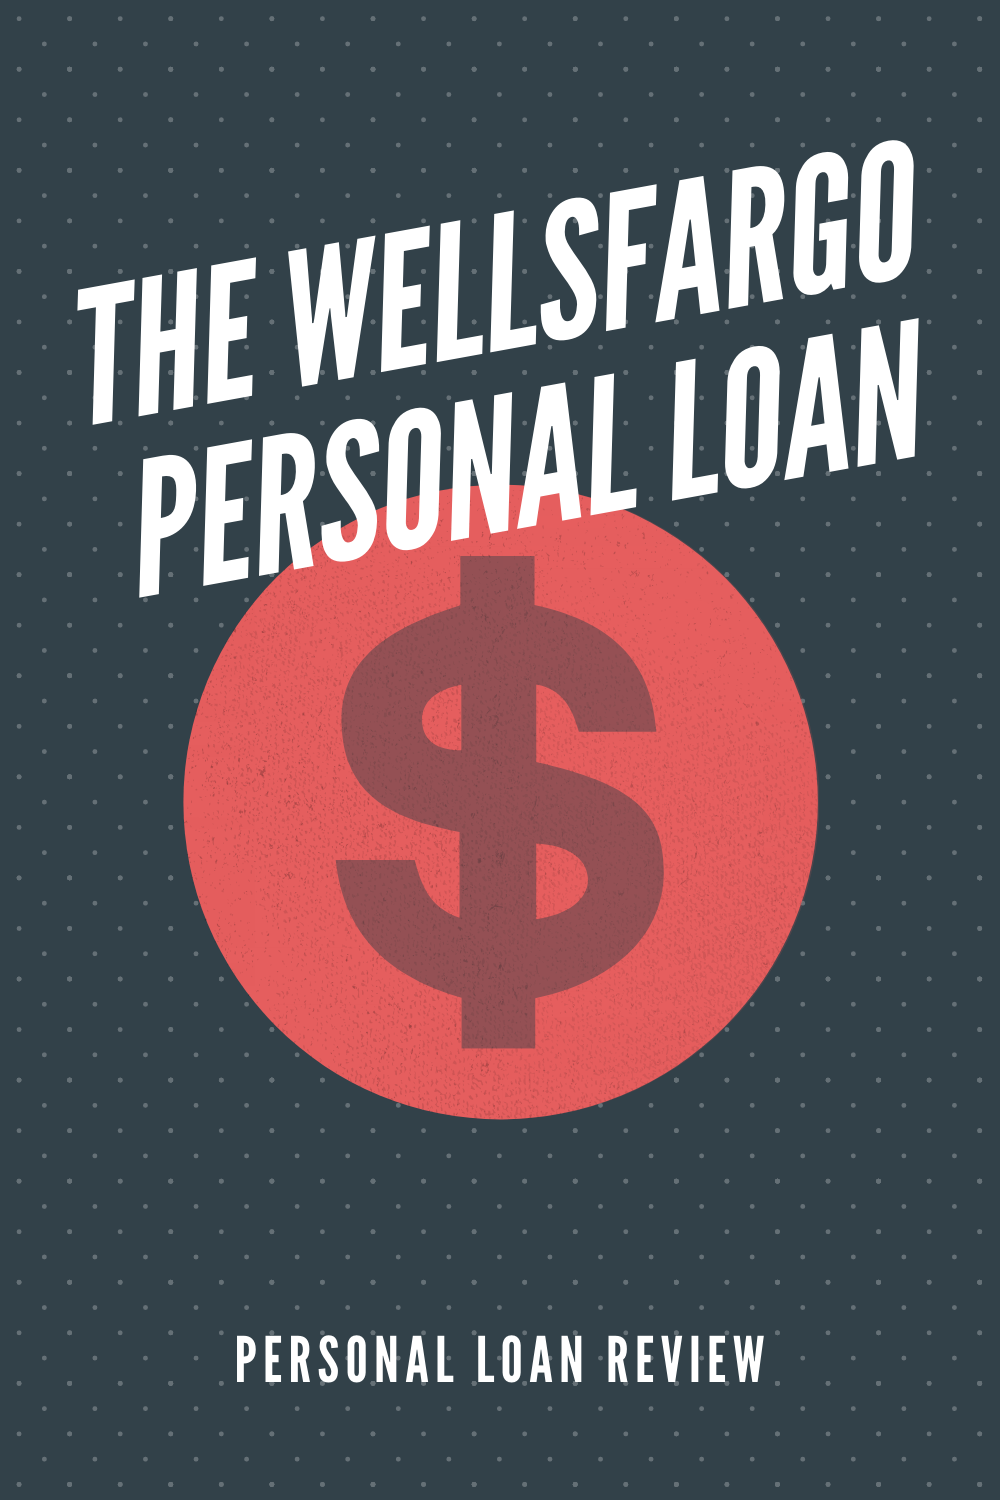 Wells Fargo Personal Loan Review In 2020 Personal Loans Loan Wells Fargo